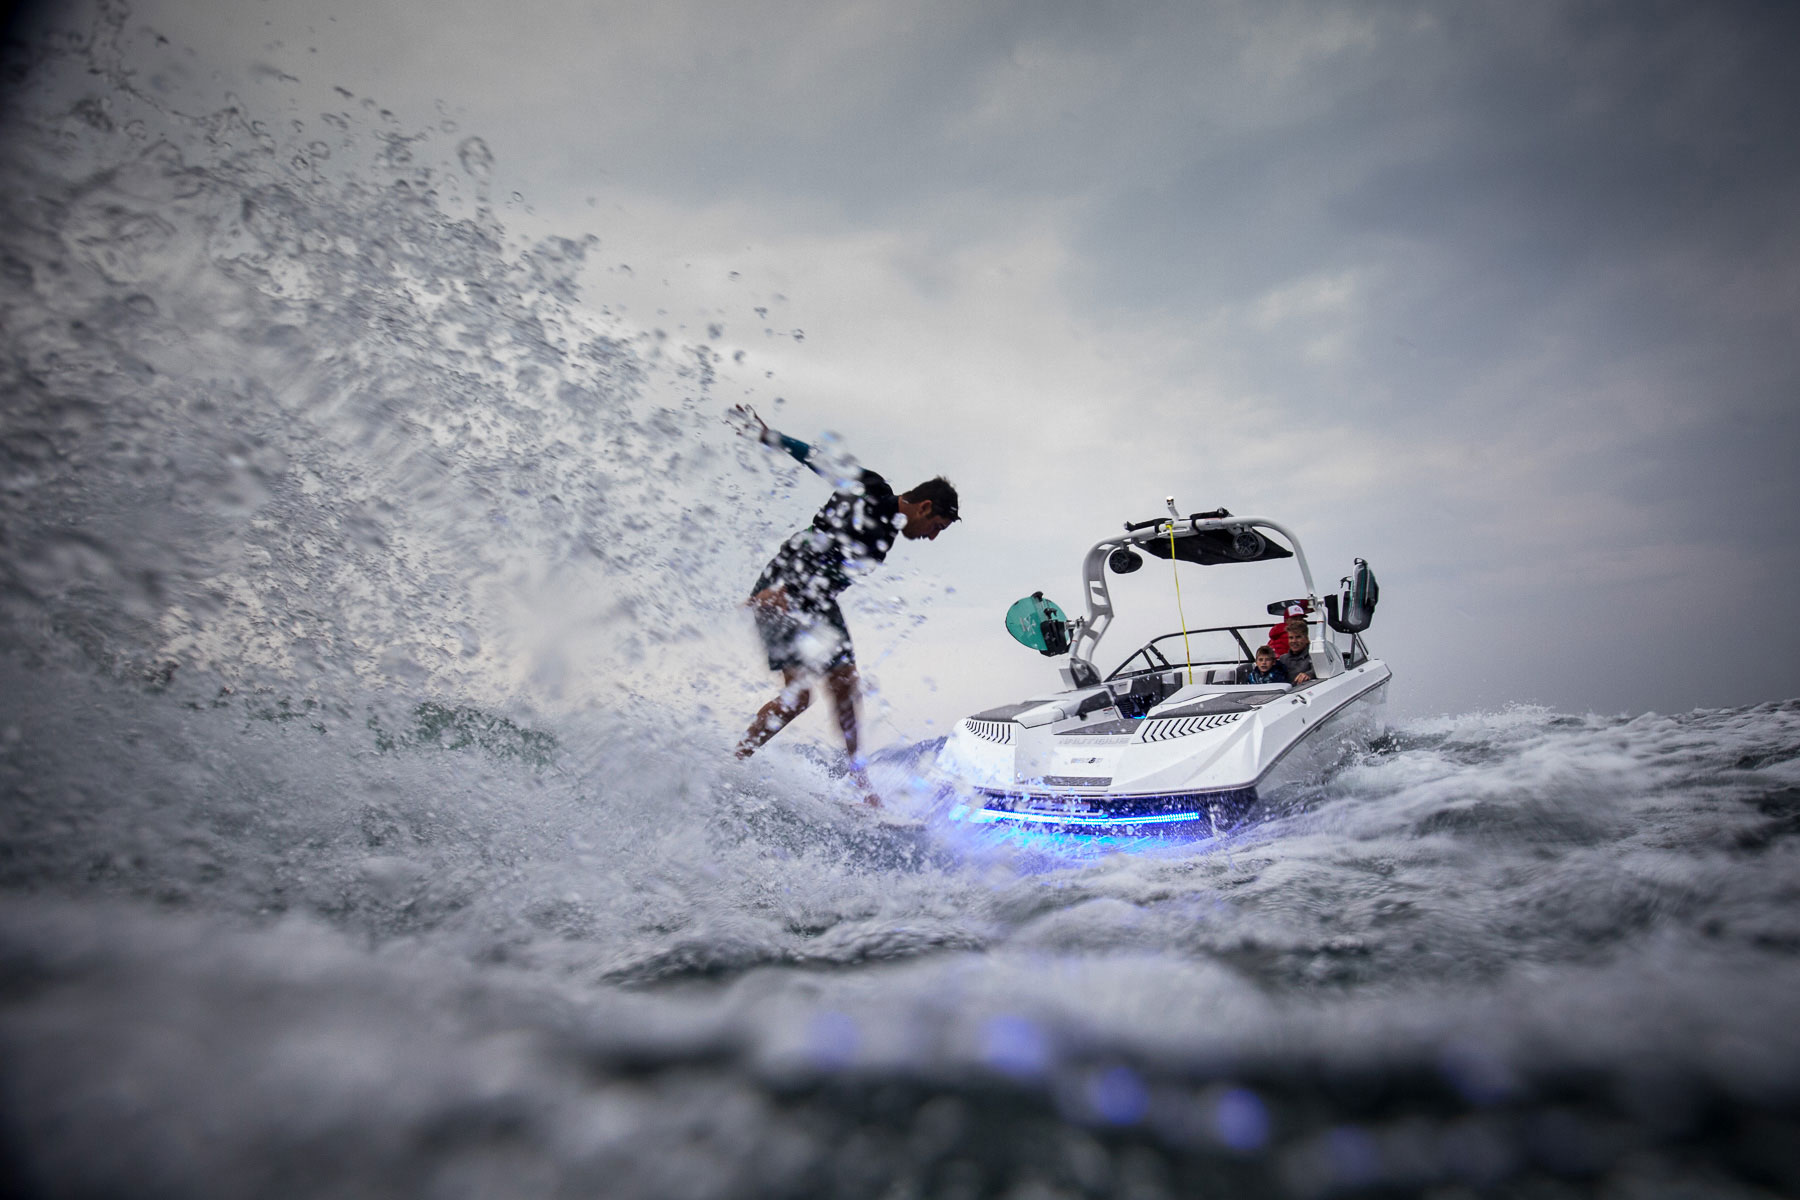 Wakesurfing behind boat with LED boat lights